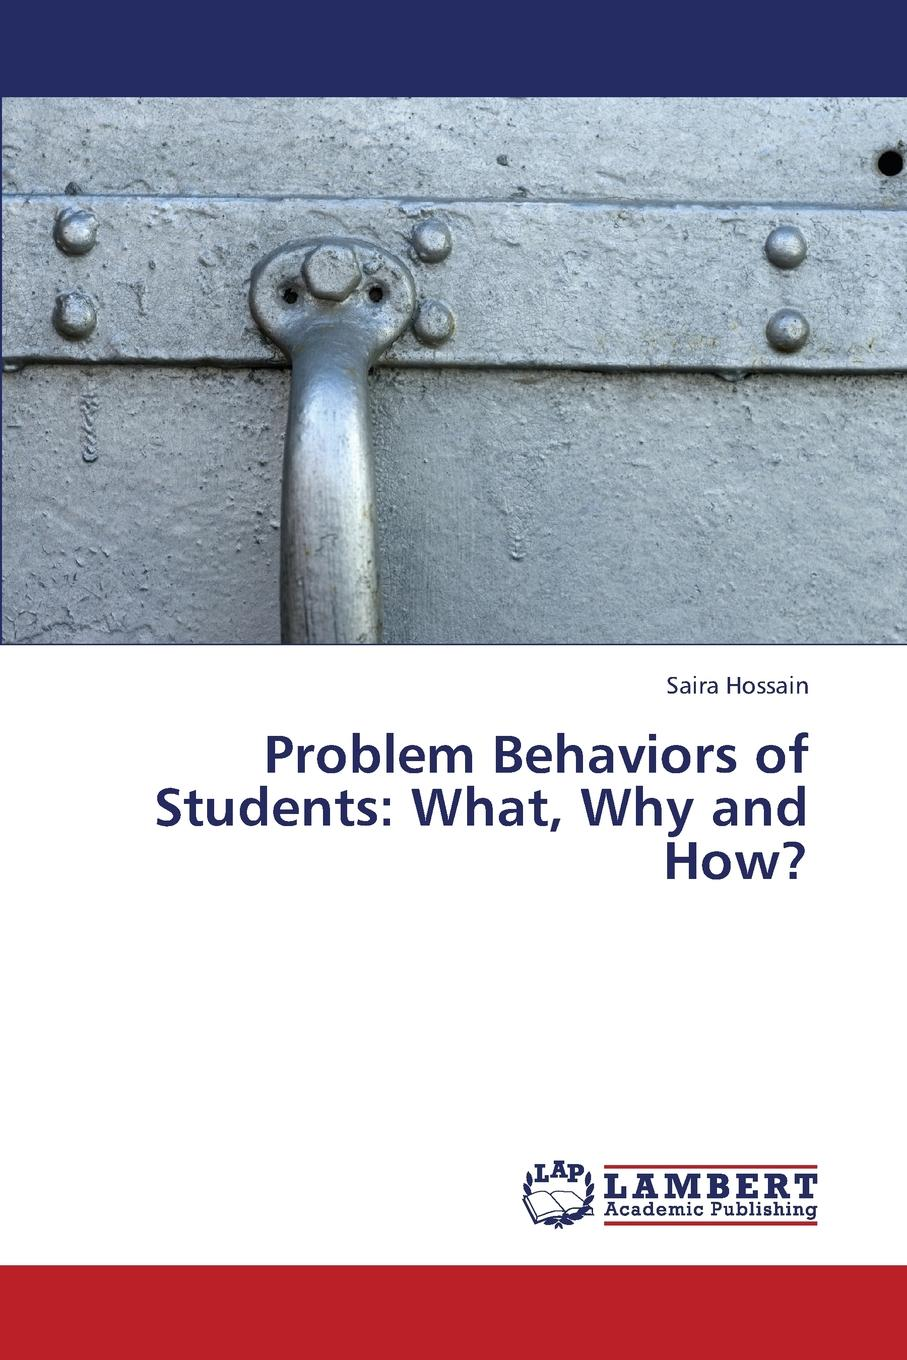 Hossain Saira Problem Behaviors of Students. What, Why and How. psychological adjustment of bangladeshi students at iiu malaysia